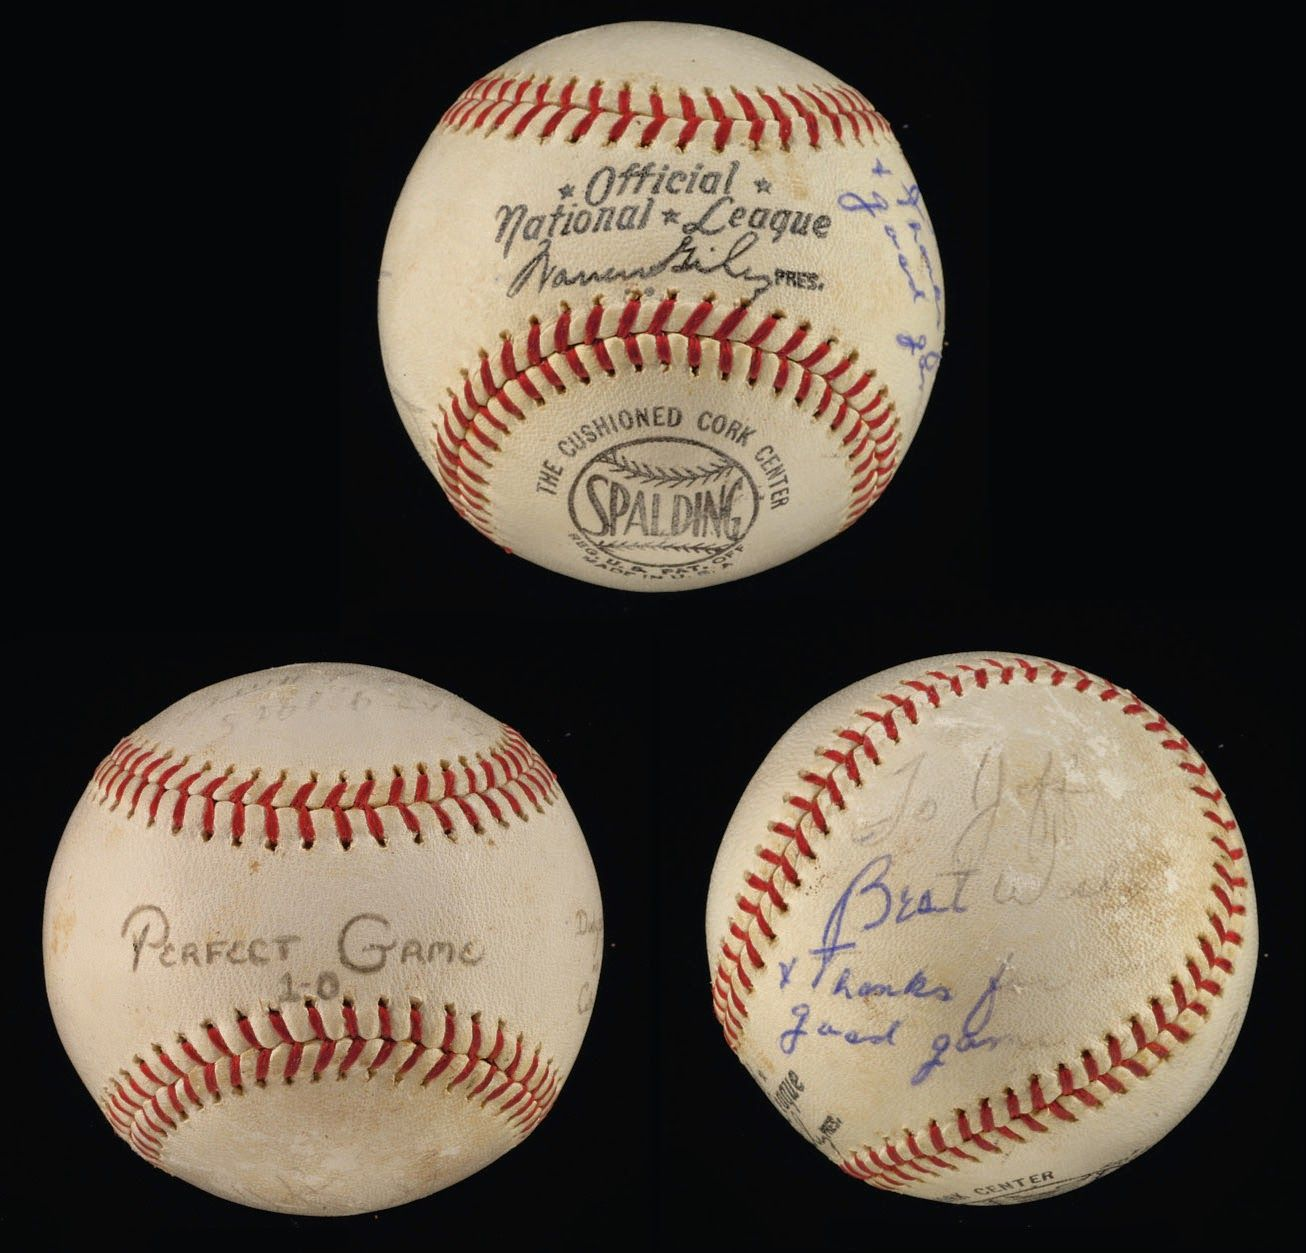 "Dodgers Blue Heaven: The Jeff Torborg Collection at Hunt's MLB FanFest Auction - He Caught Koufax's Perfect Game: And to cap it off, Jeff Torborg caught Sandy Koufax's Perfect game on September 9, 1965.  BTW, Torborg was just 23 years old at the time.  Below is a game ball inscribed by Sandy to Jeff.     ""To Jeff, Best wishes + thanks for a good game"""